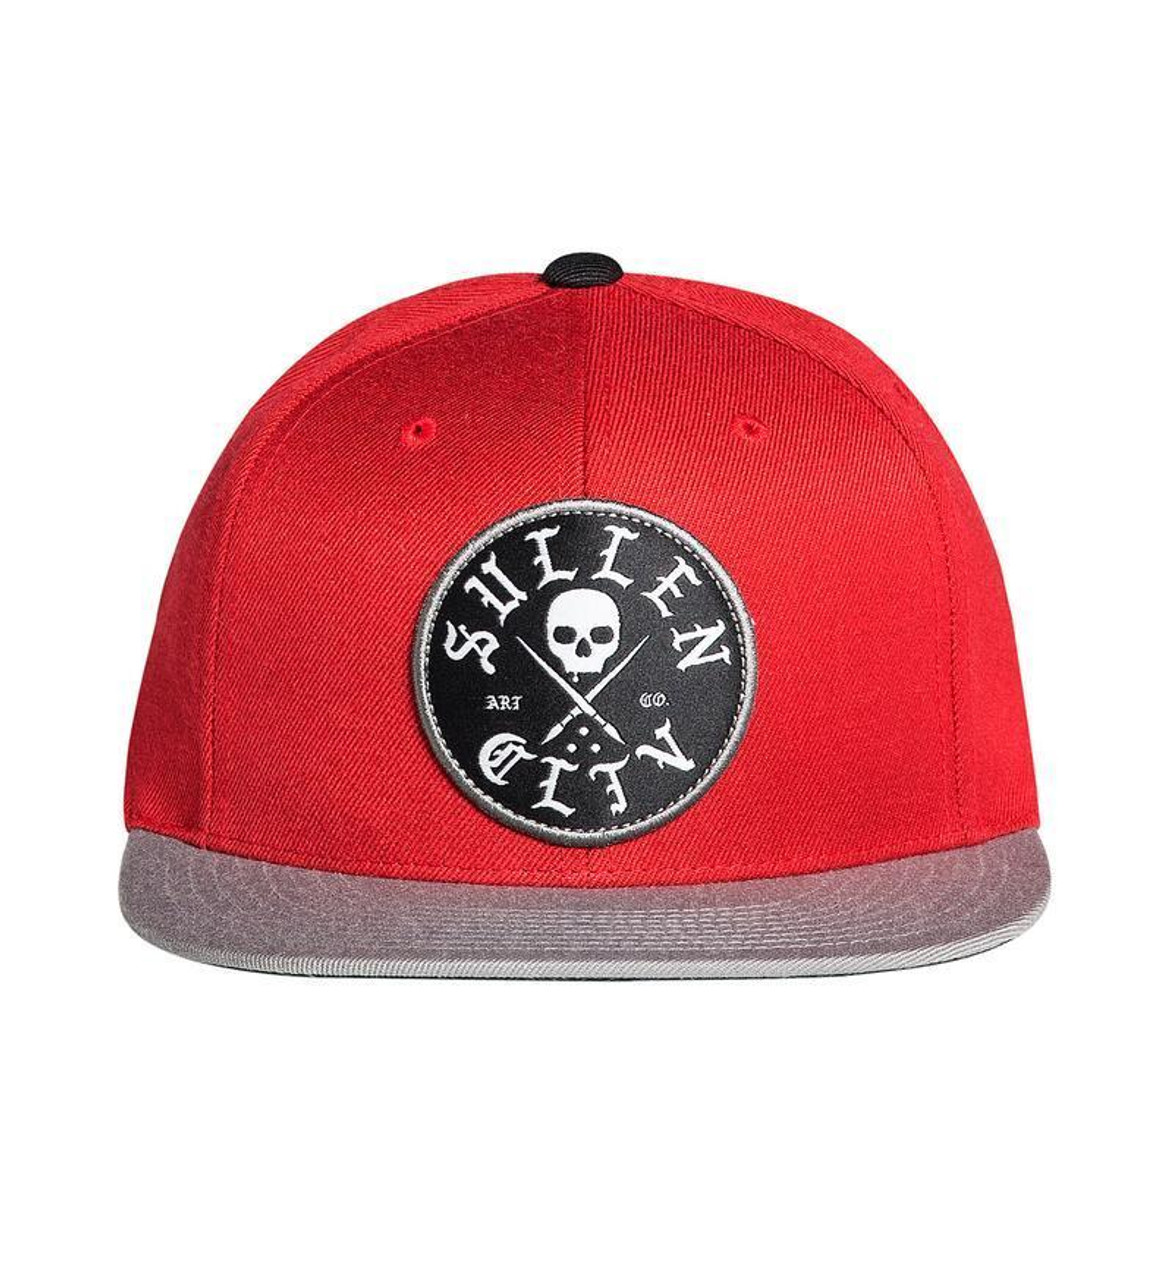 21ed81a1f7bfd Sullen Art Collective Clothing Shader Red Woven Cap Hat Snapback SCA1605 -  Fearless Apparel